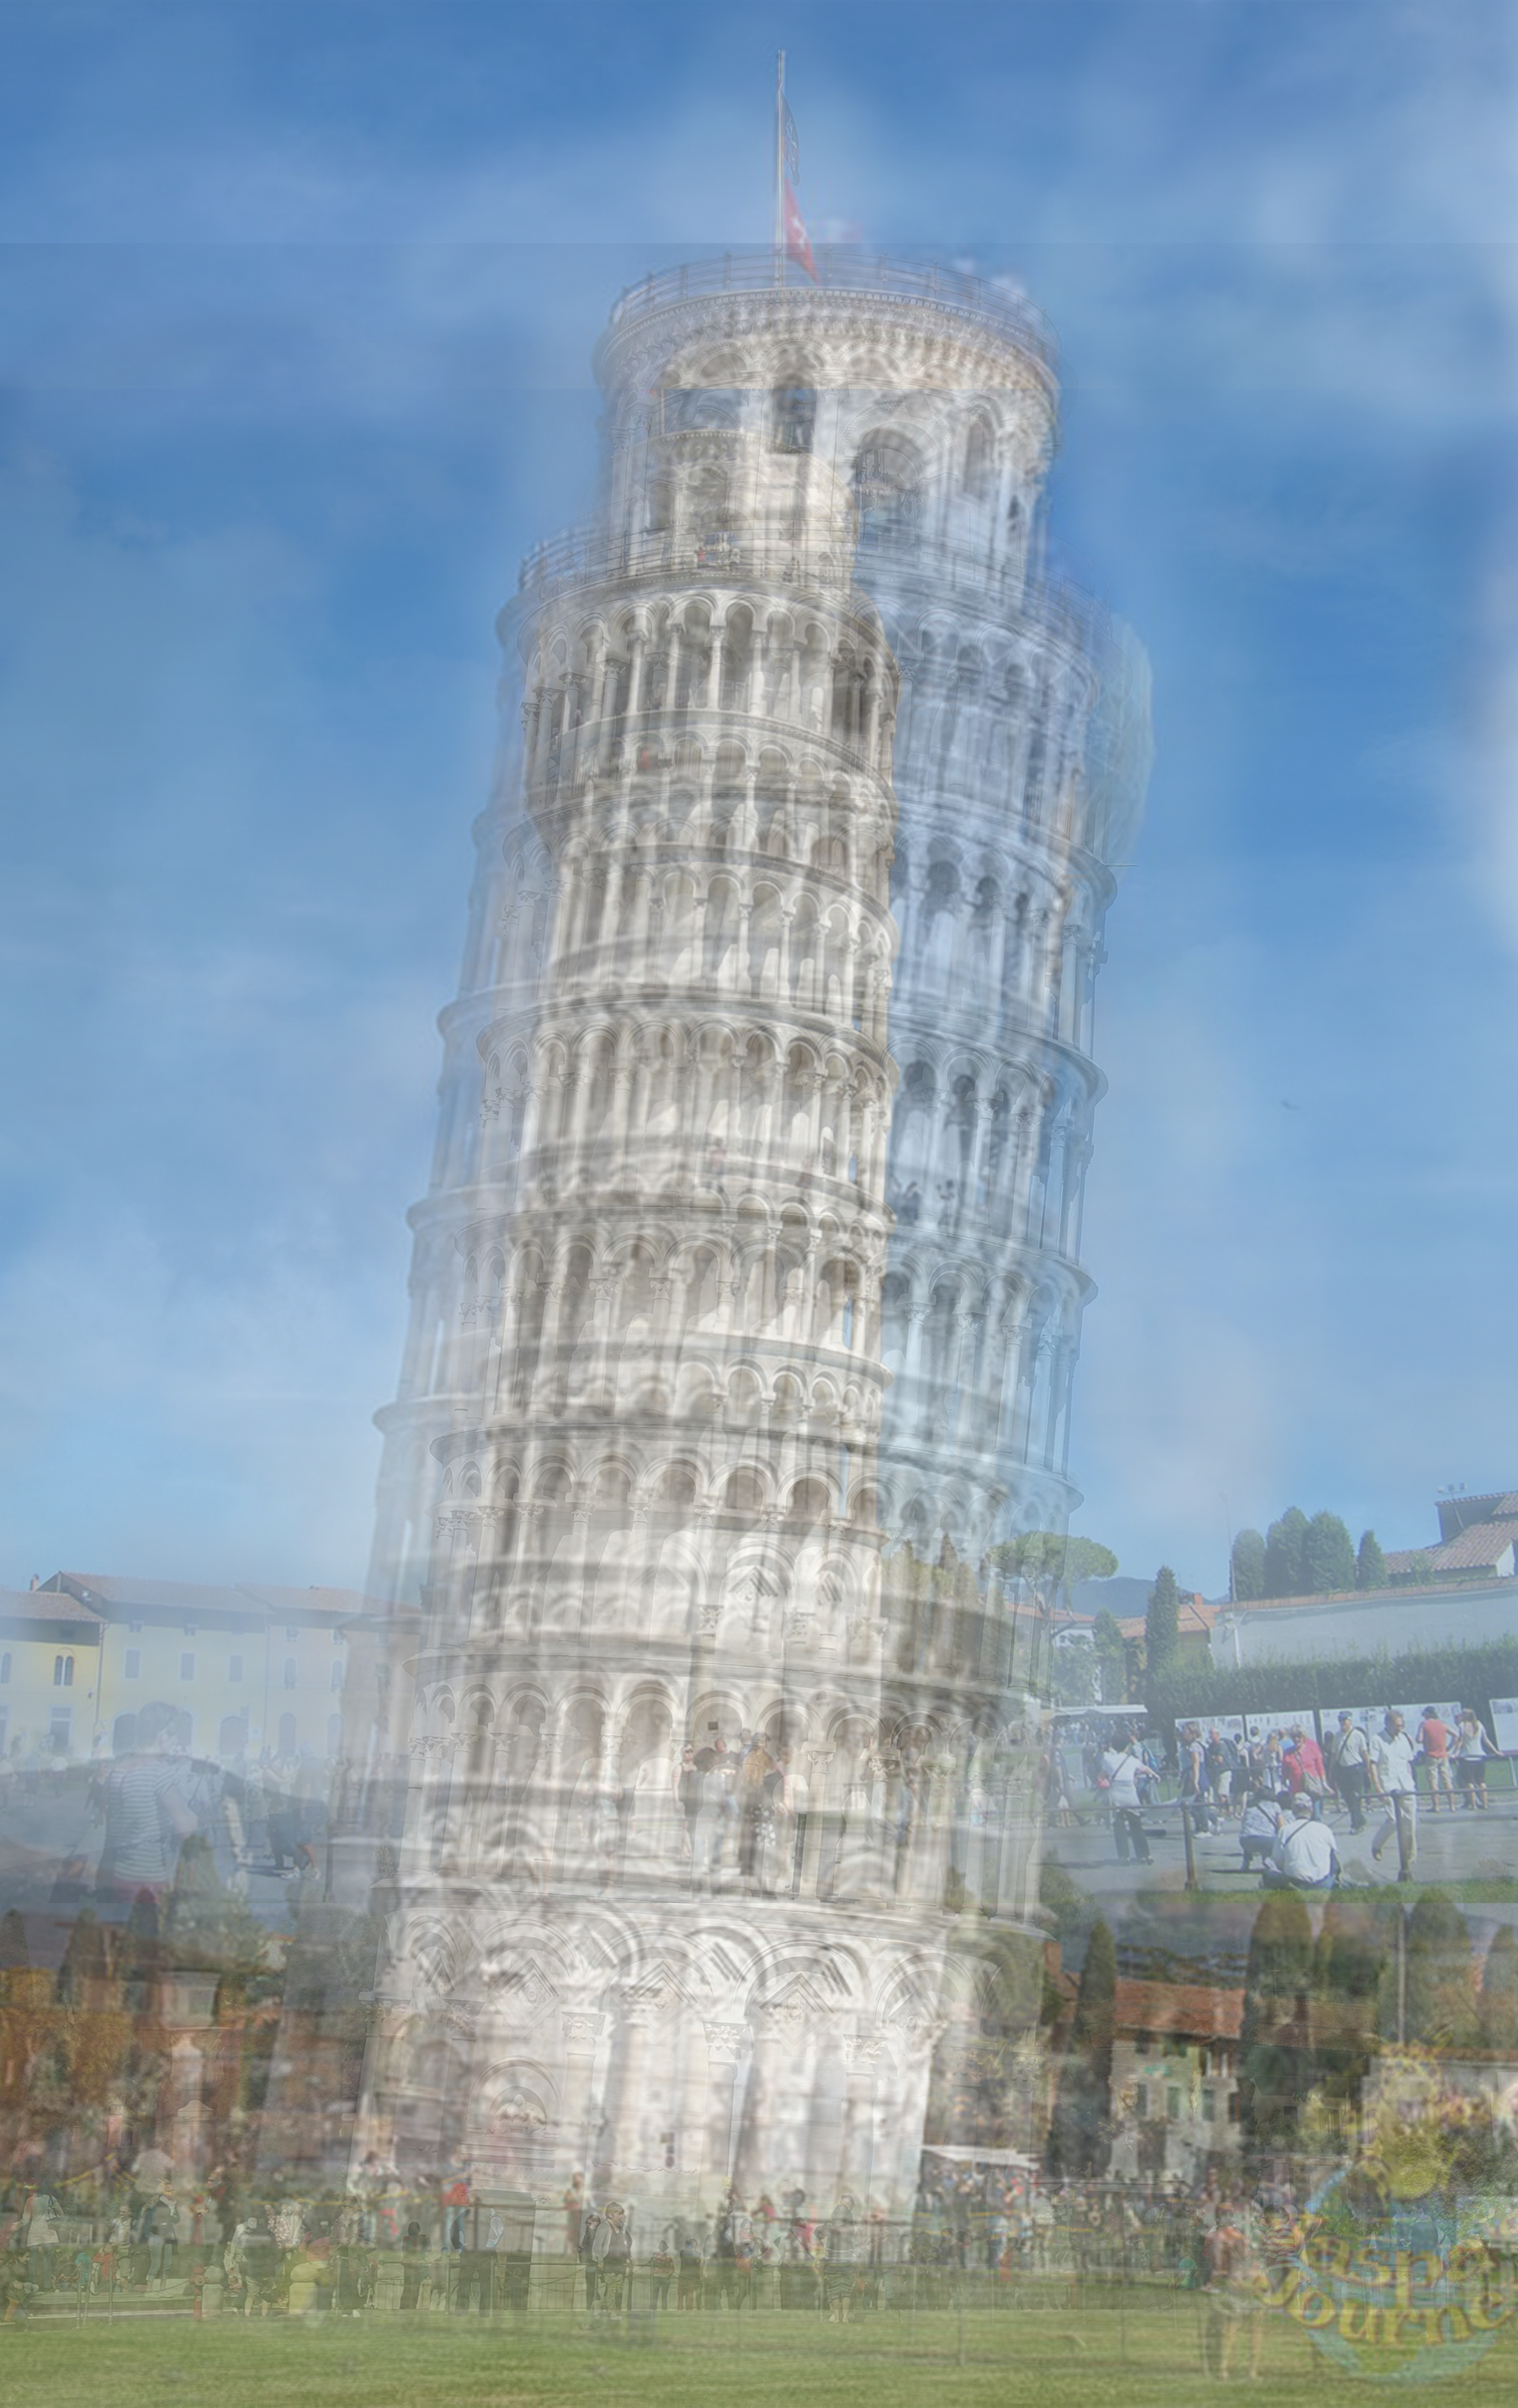 Similarly, this image of the Leaning Tower of Pisa (above) is a compilation of many similar photographs. It reminds me of Martin Parr's  photograph , in 'Small World', of a number of people attempting to have their photograph taken, trying to either push over, or keep the tower upright.